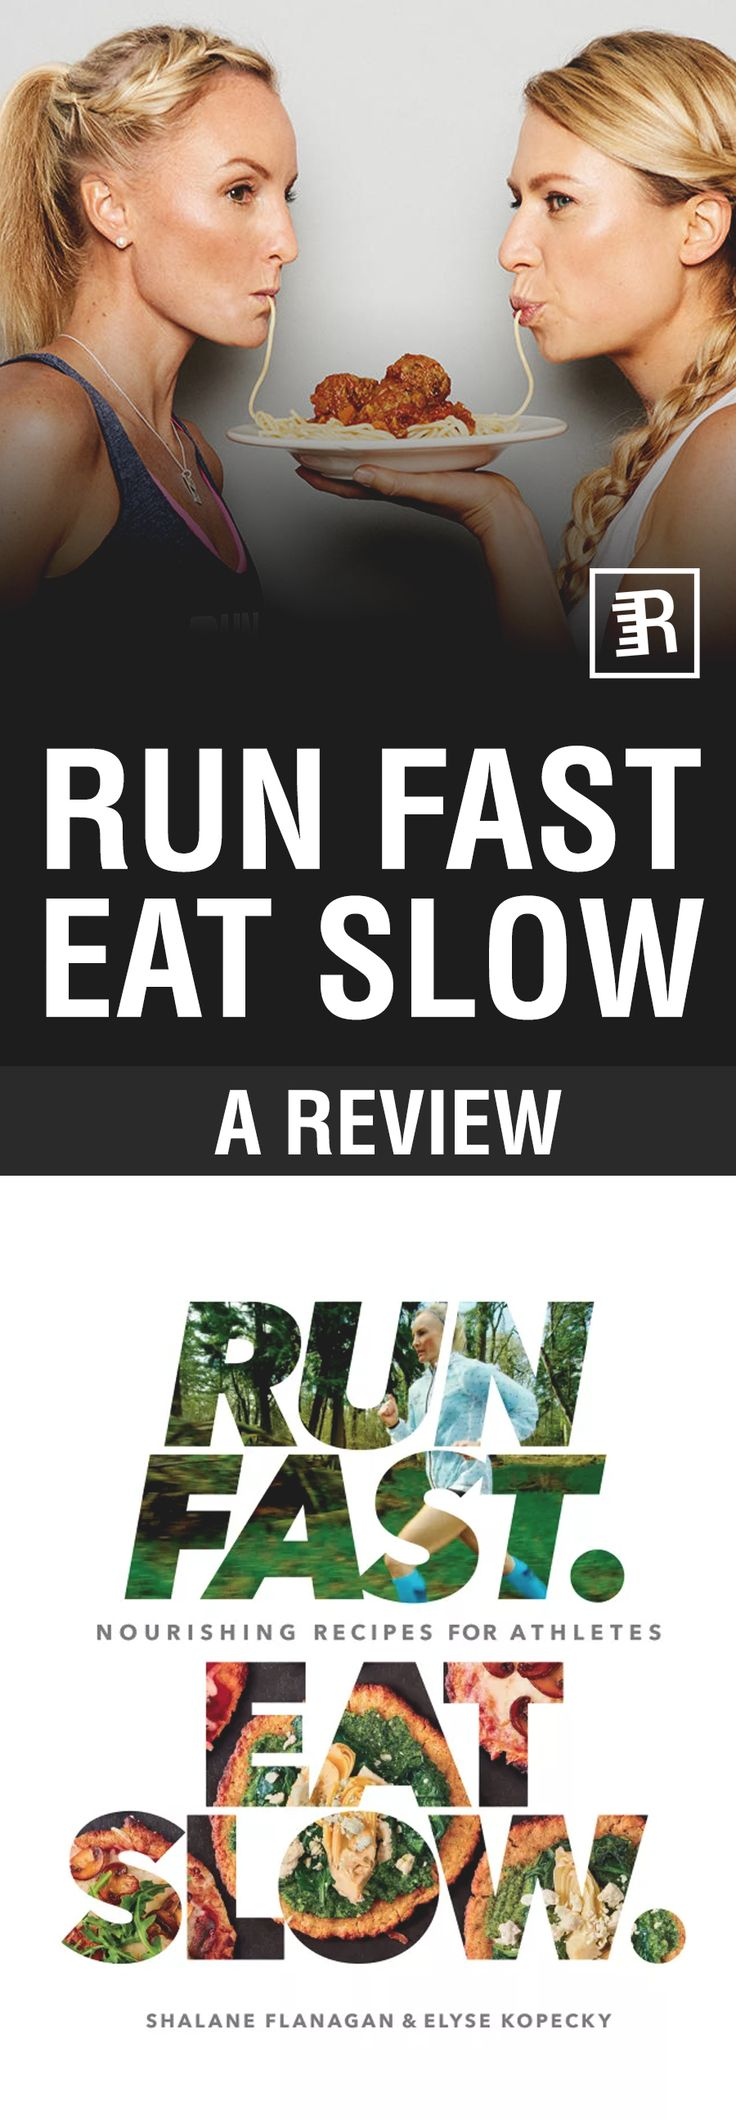 The up and coming book Run Fast Eat Slow by Shalane Flanagan and Elyse Kopecky shatters previous understanding of what it means to eat as a runner.